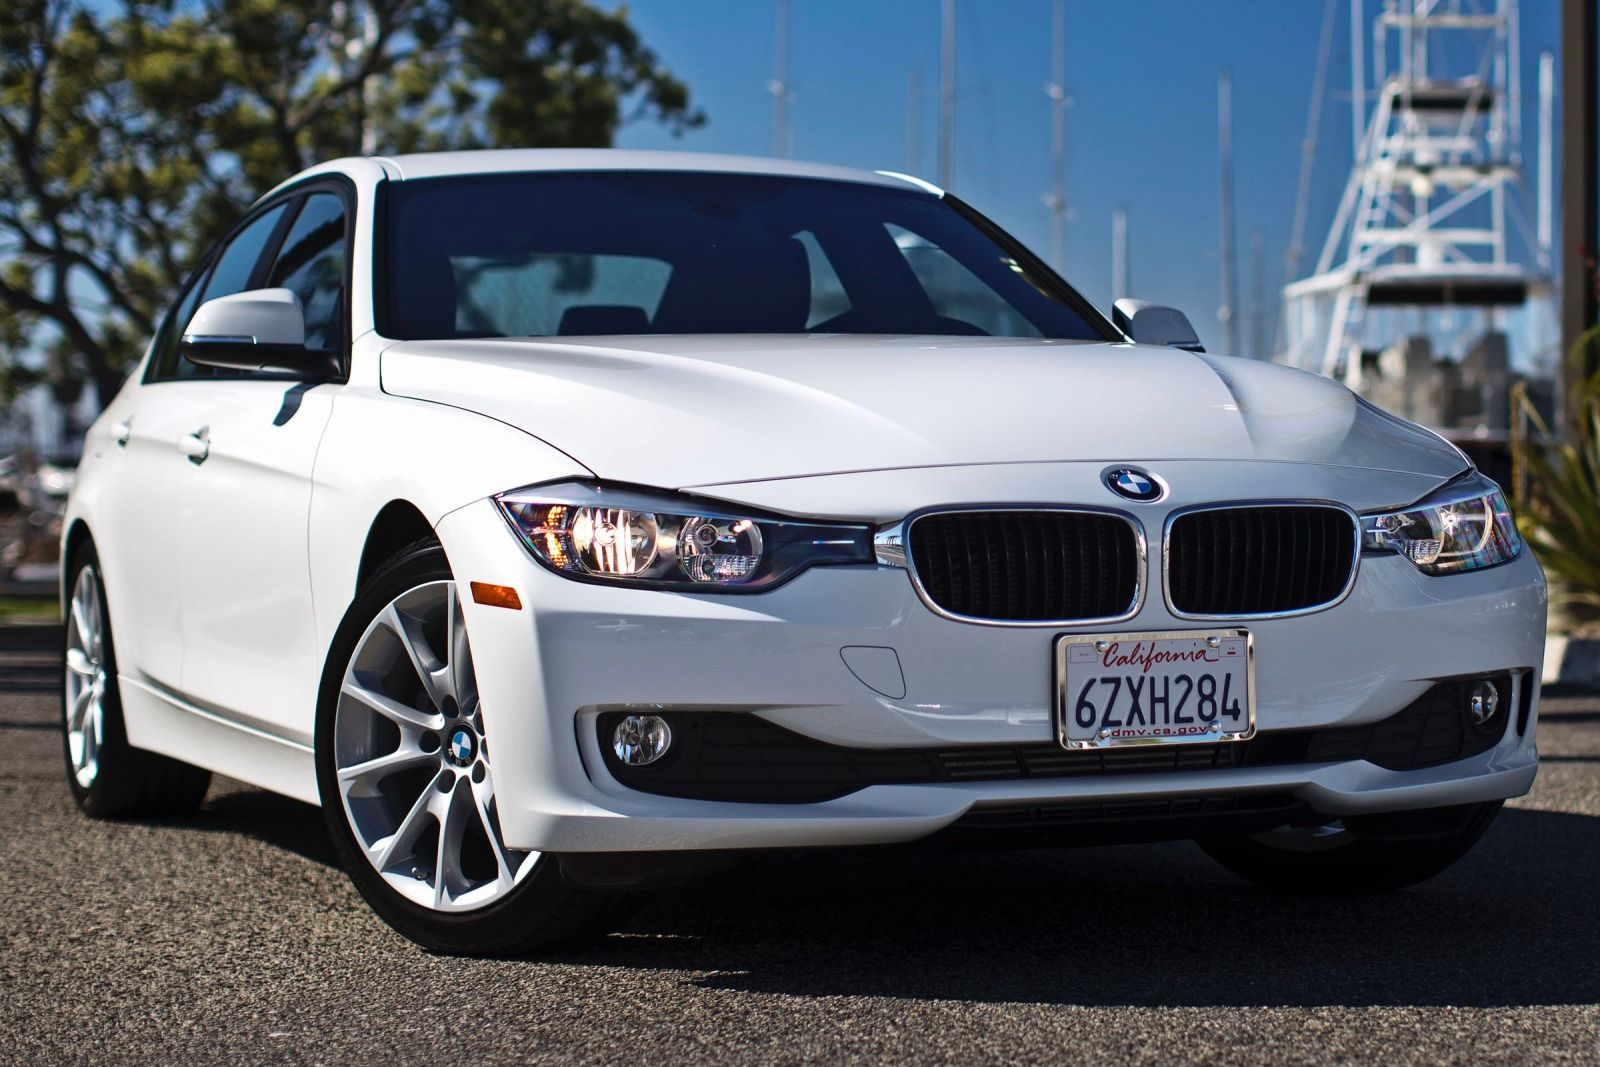 Bmw 325 2014 Review Amazing Pictures And Images Look